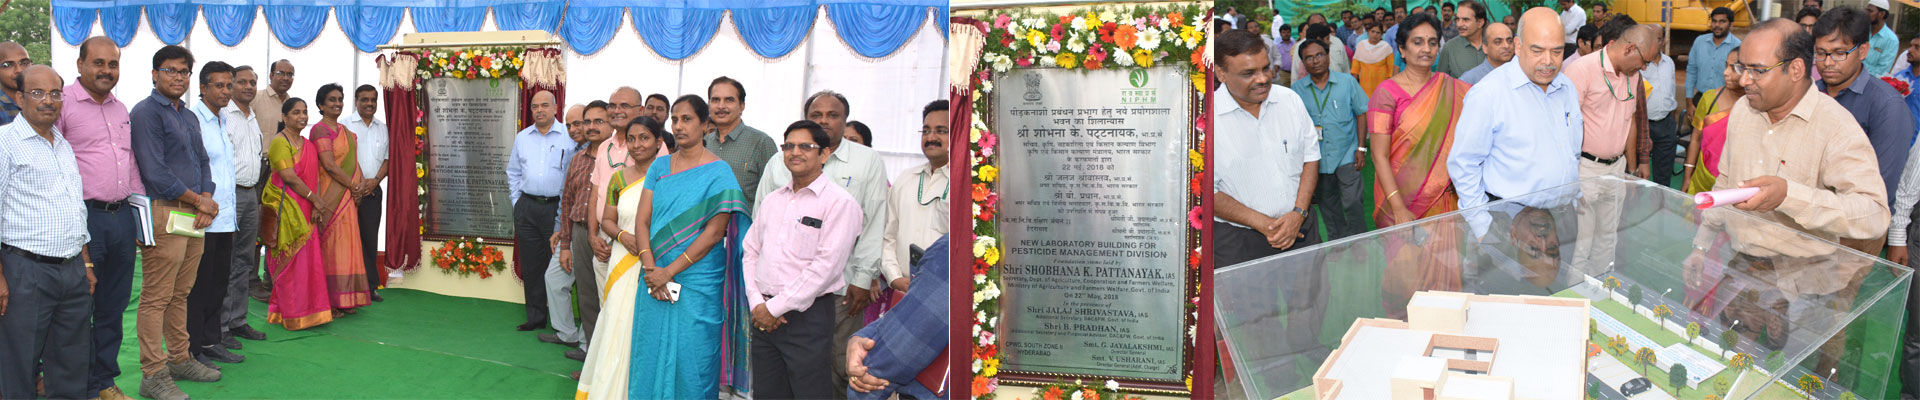 Foundation Stone Laying for New Laboratory Building for Pesticide Management Division